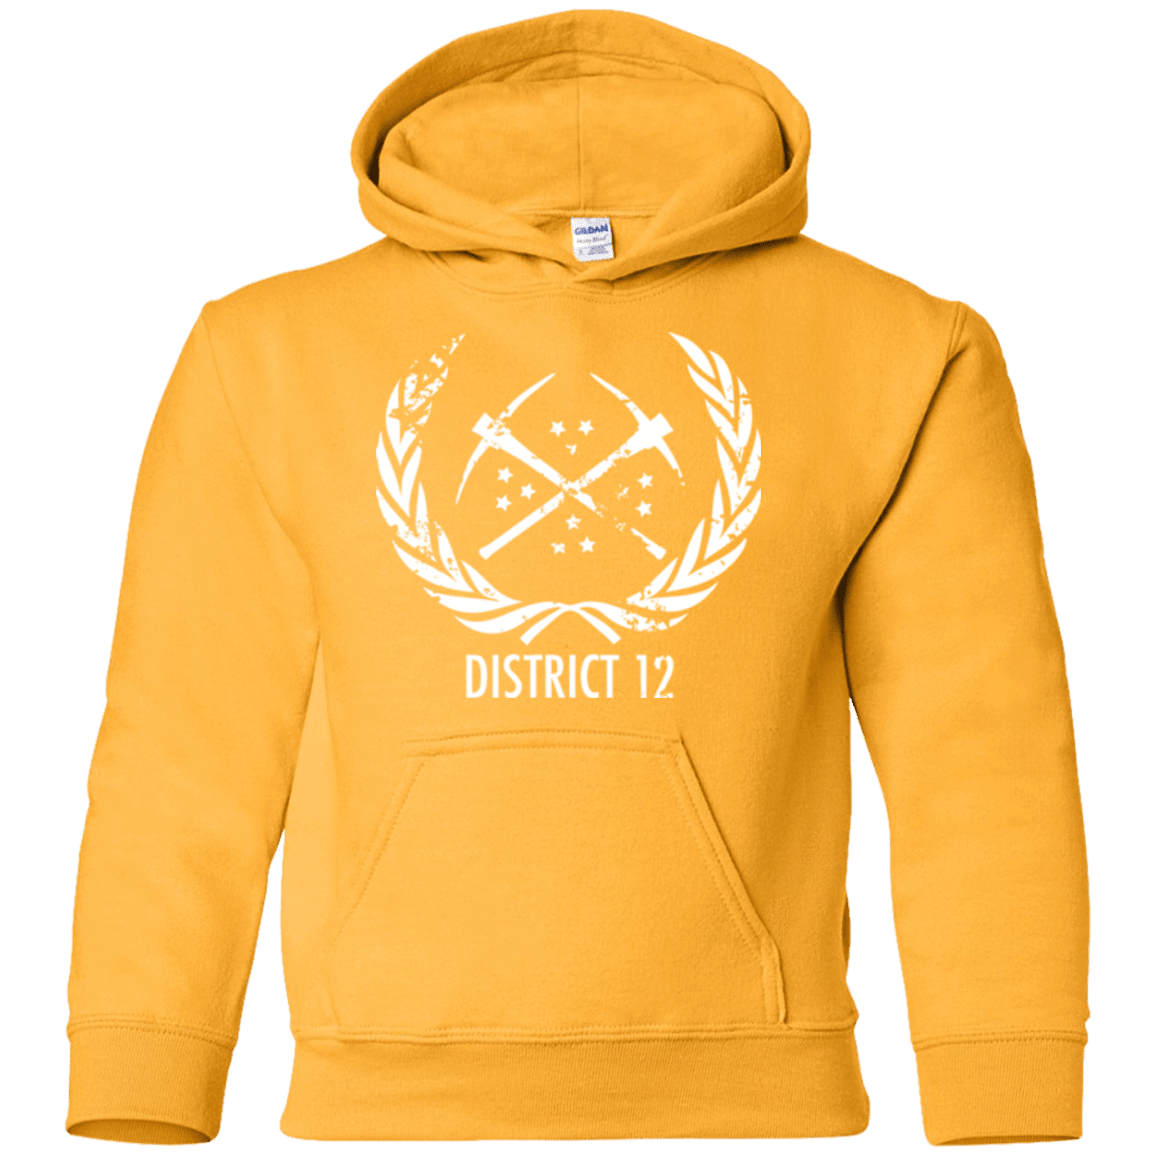 District 12 Youth Hoodie